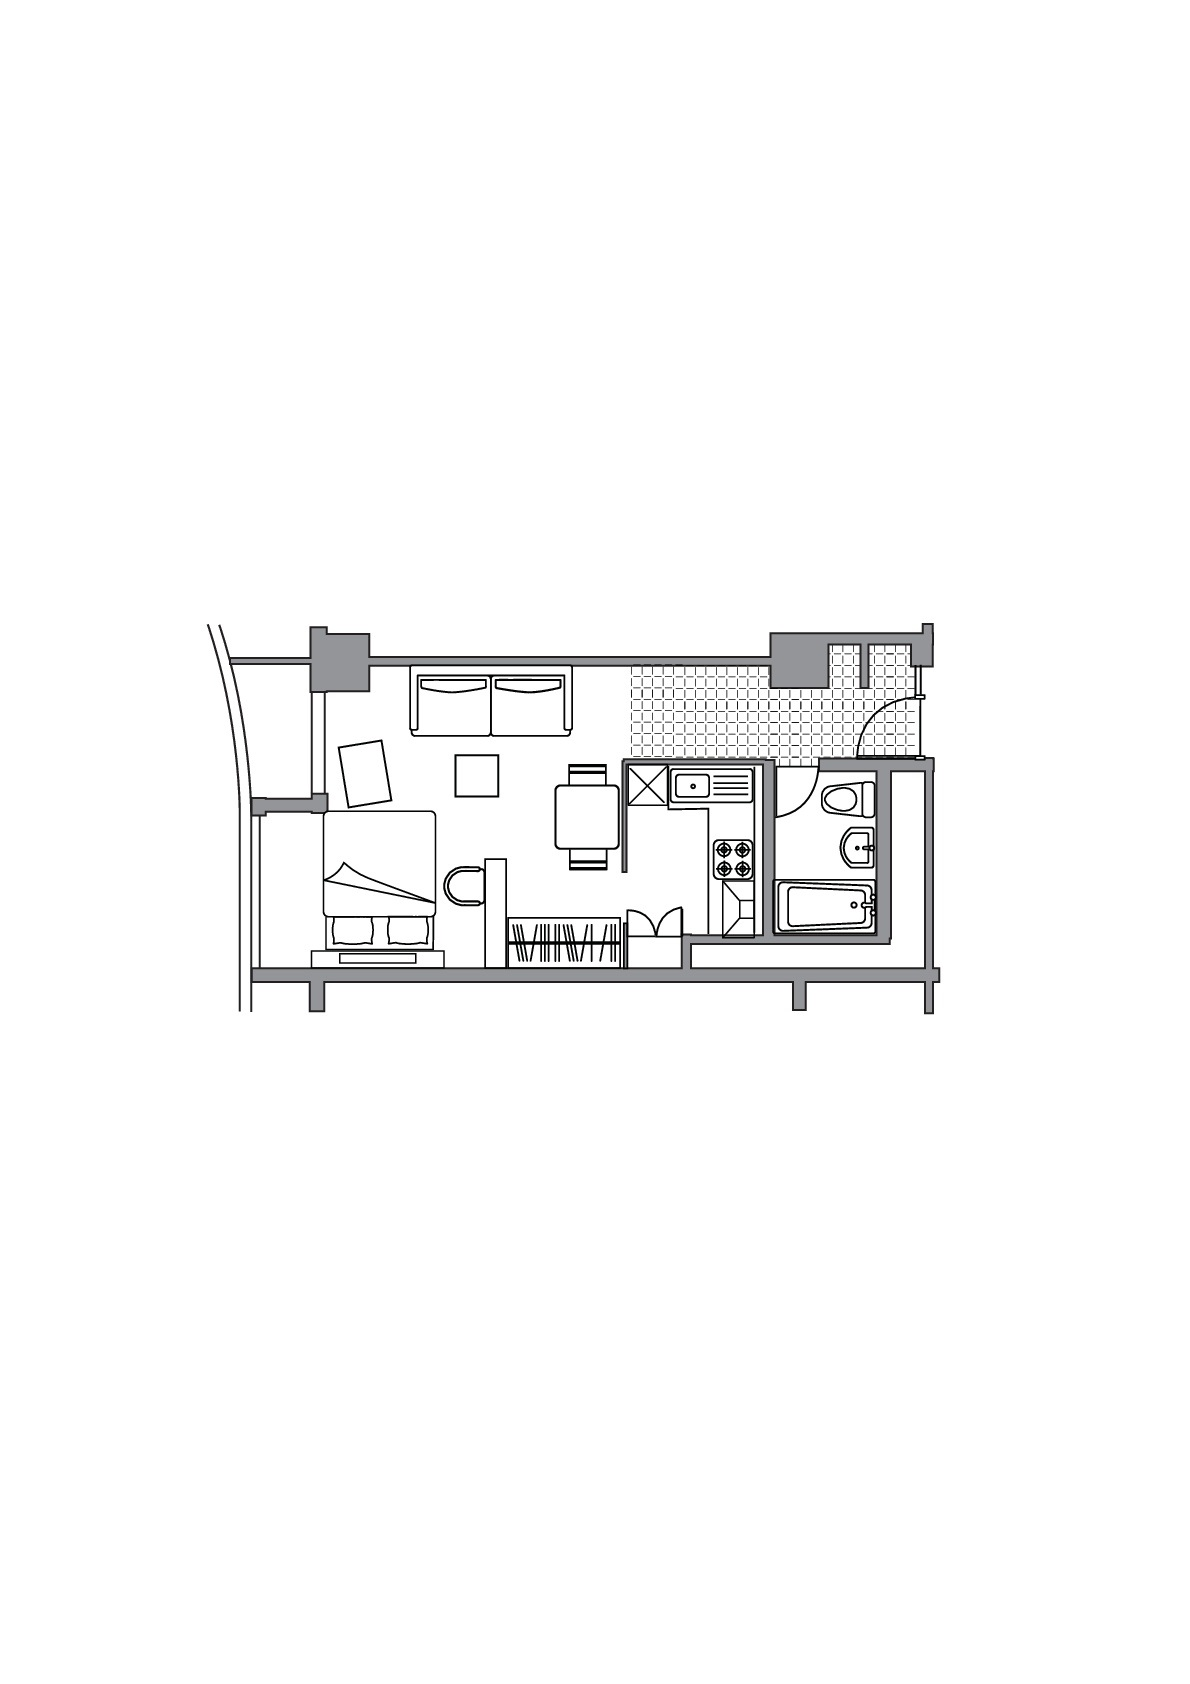 Executive studio apartment floor plan at Somerset Shinagawa Apartments